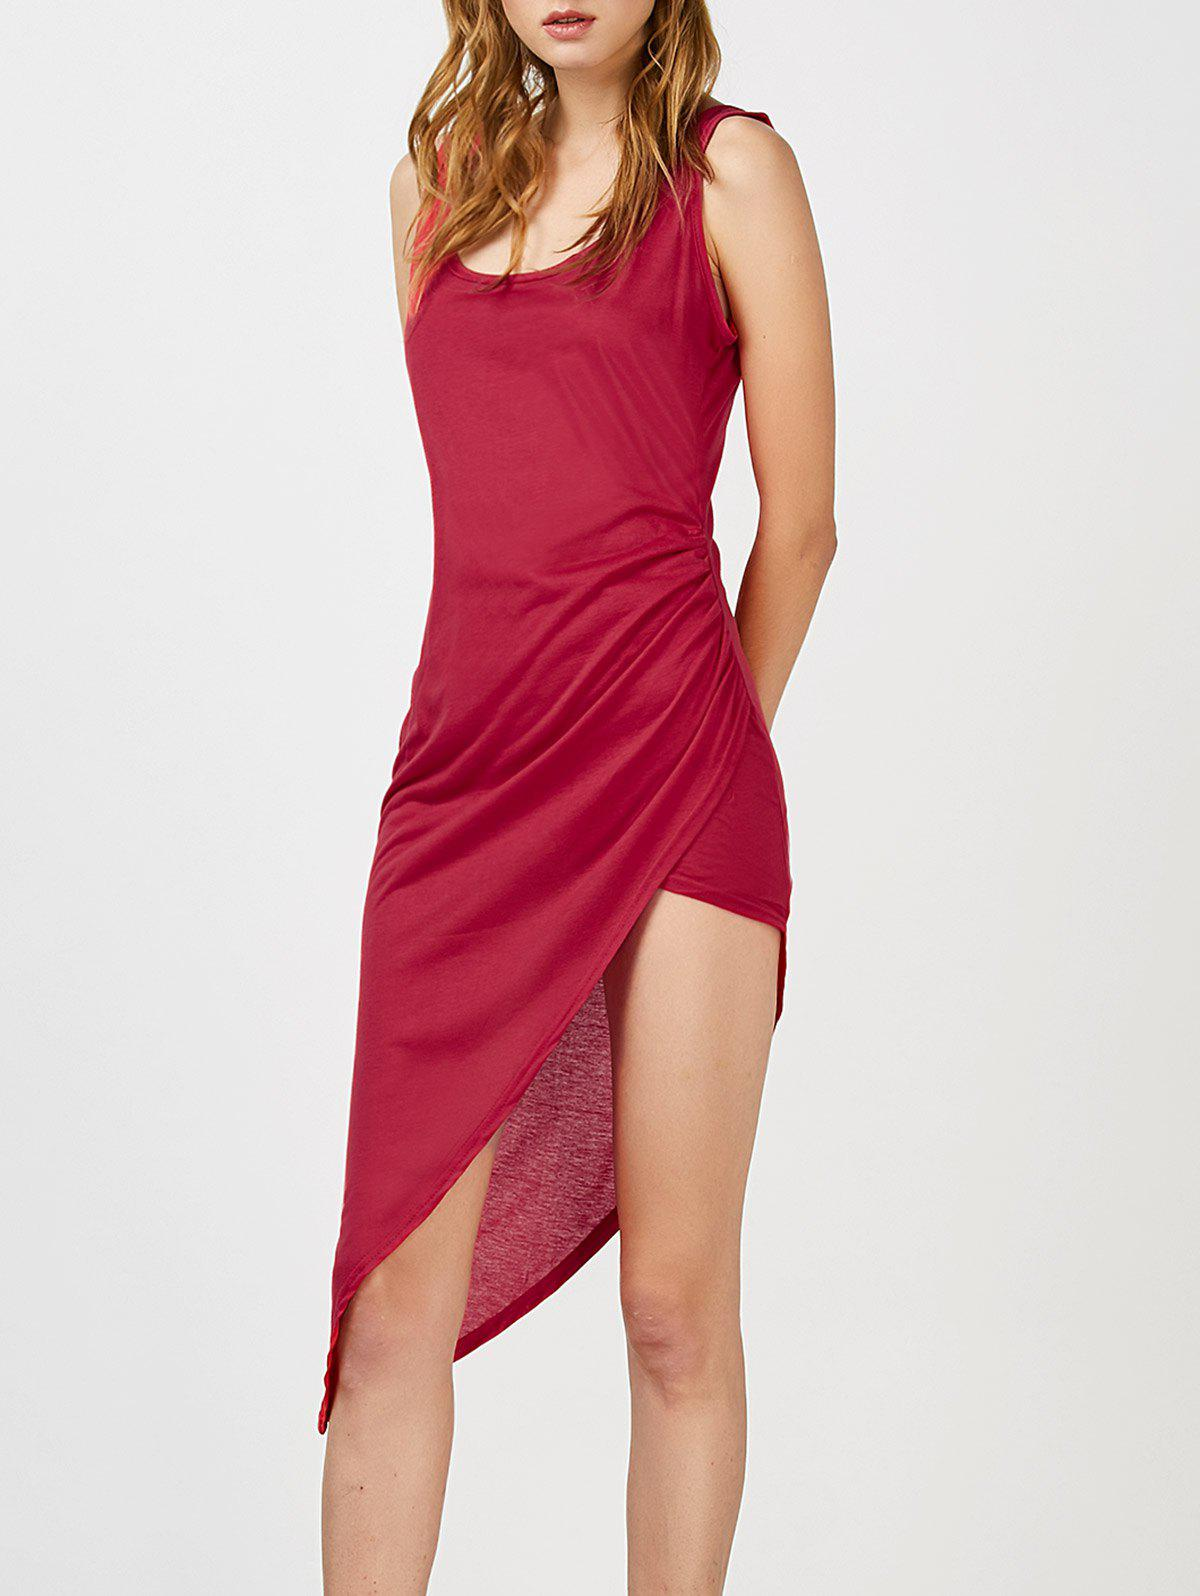 Asymmetric Hem Sleeveless Dress - RED S